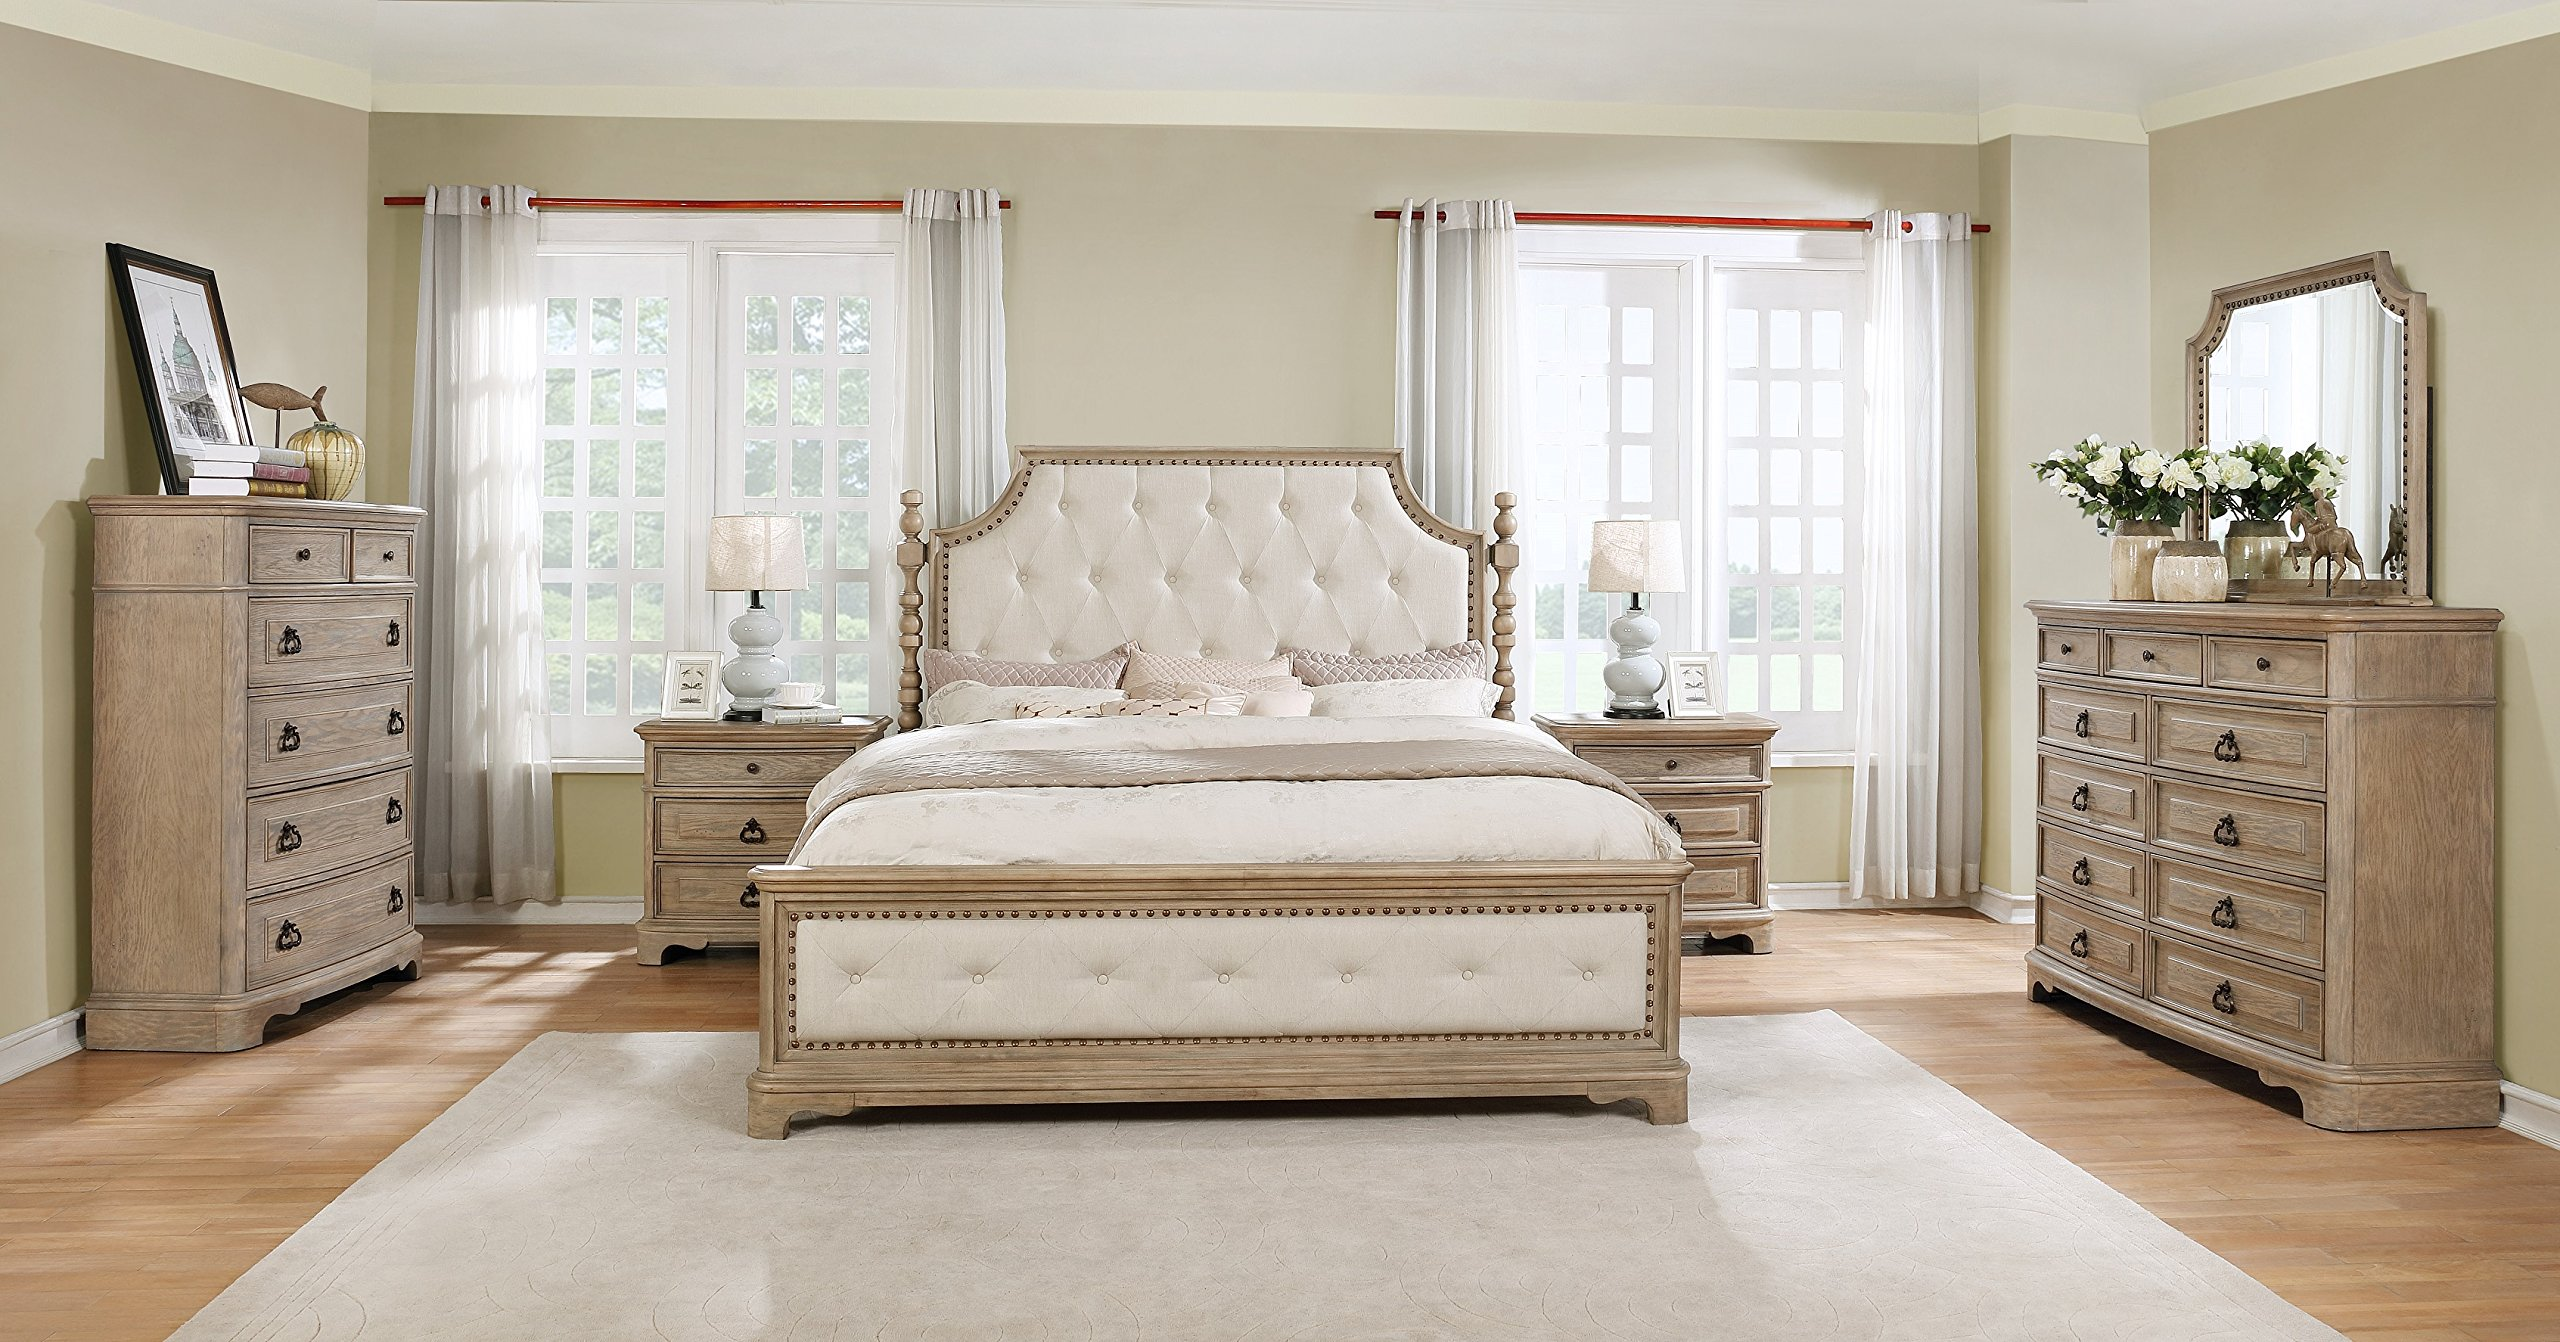 Roundhill Furniture B296KDMN2C Piraeus 296 Solid Wood Construction Bedroom Set with King Size Bed, Dresser, Mirror 2, Chest and 2 Night Stands